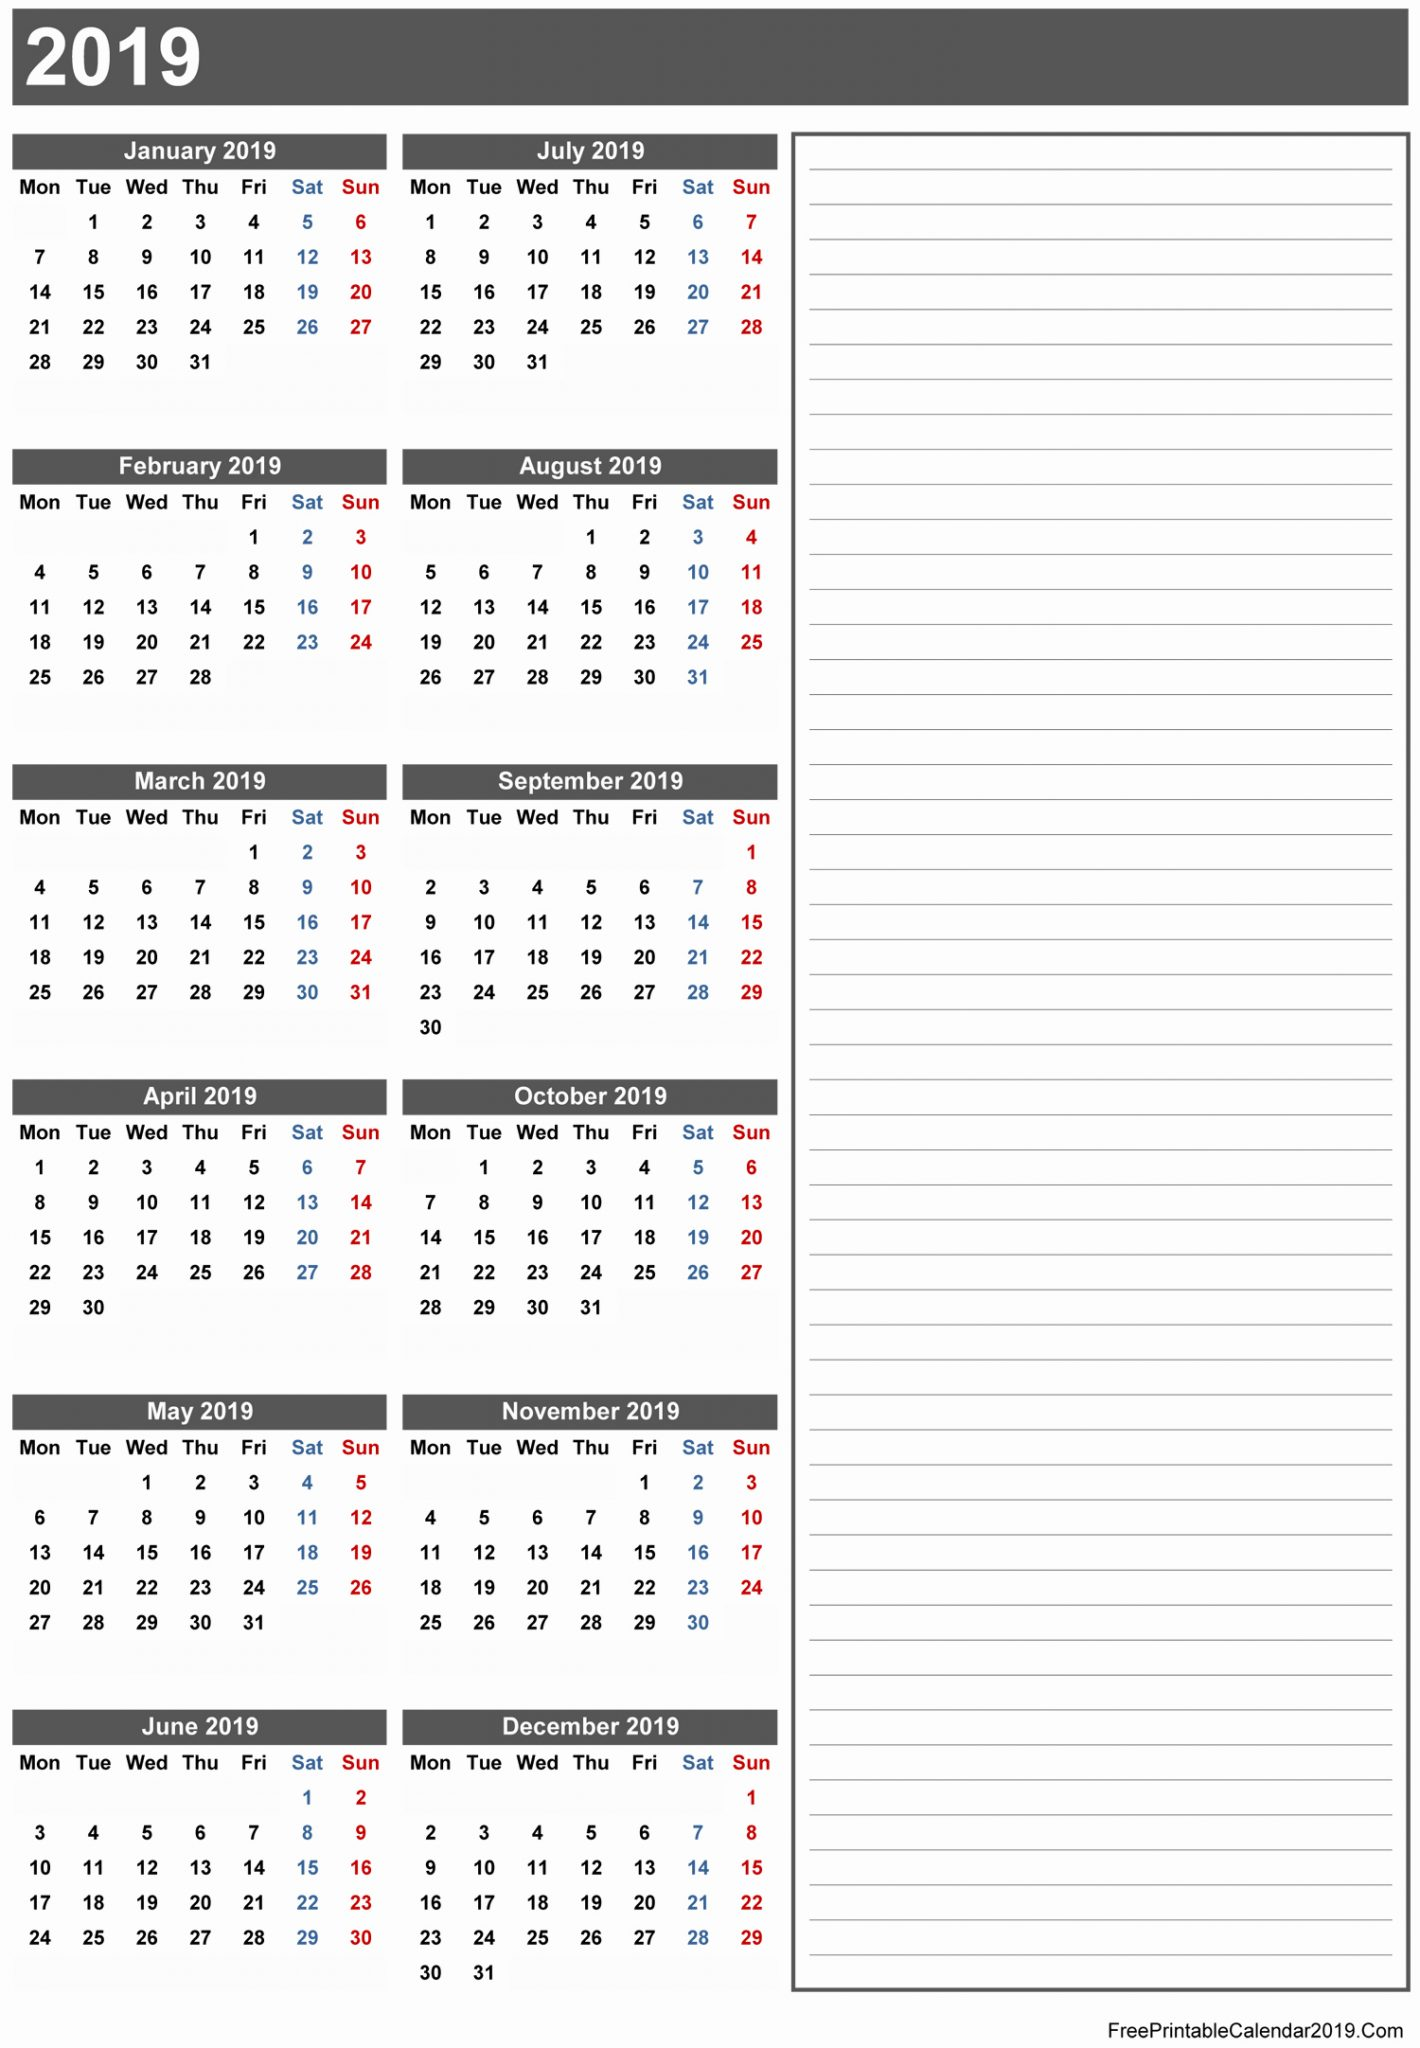 Free Printable Calendar 2019 In Word Excel Pdf, free printable calendar 2019 with holidays, 2019 yearly calendar printable plain